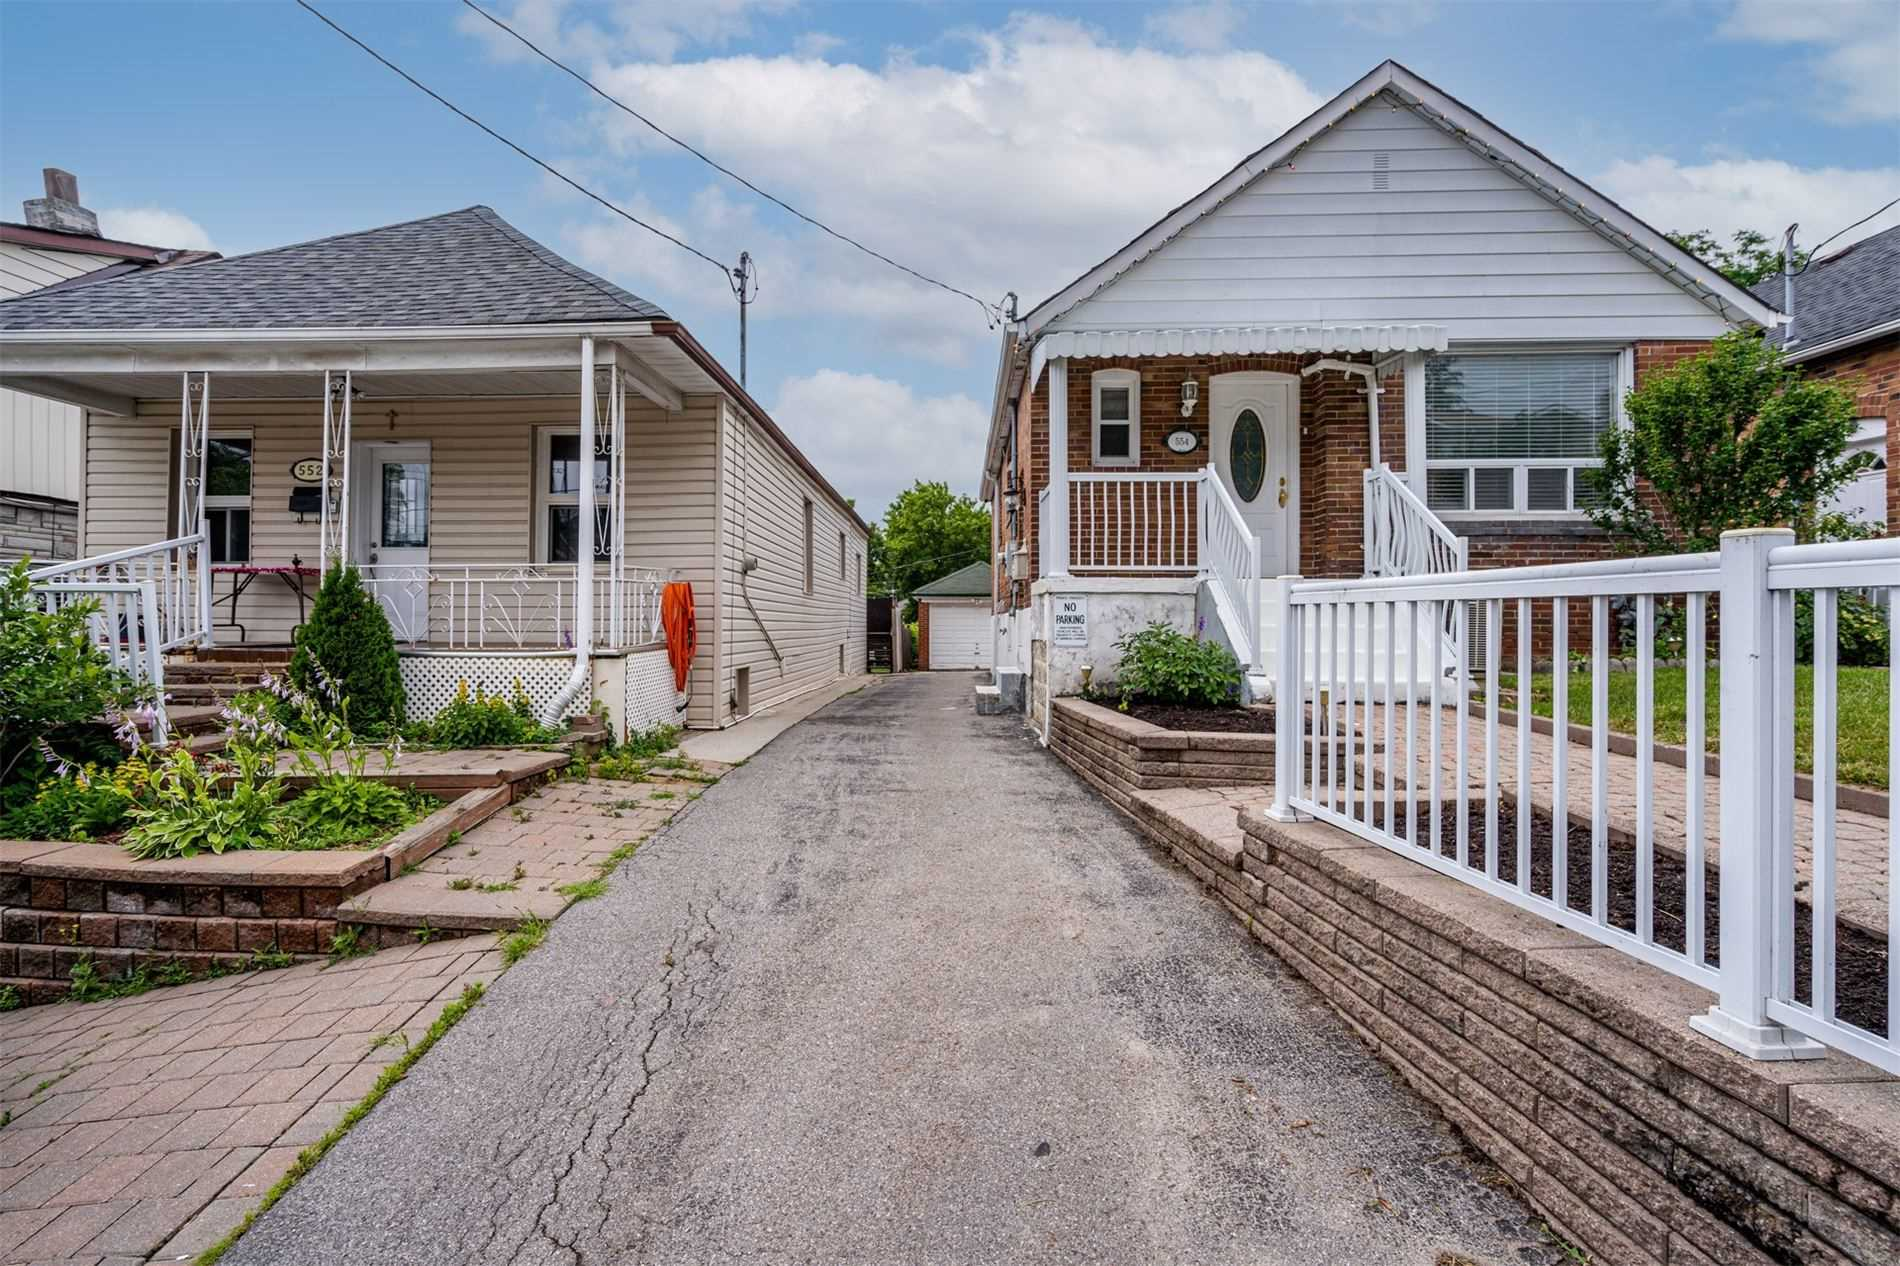 554 Caledonia Rd - Caledonia-Fairbank Detached for sale, 2 Bedrooms (W5305900) - #3